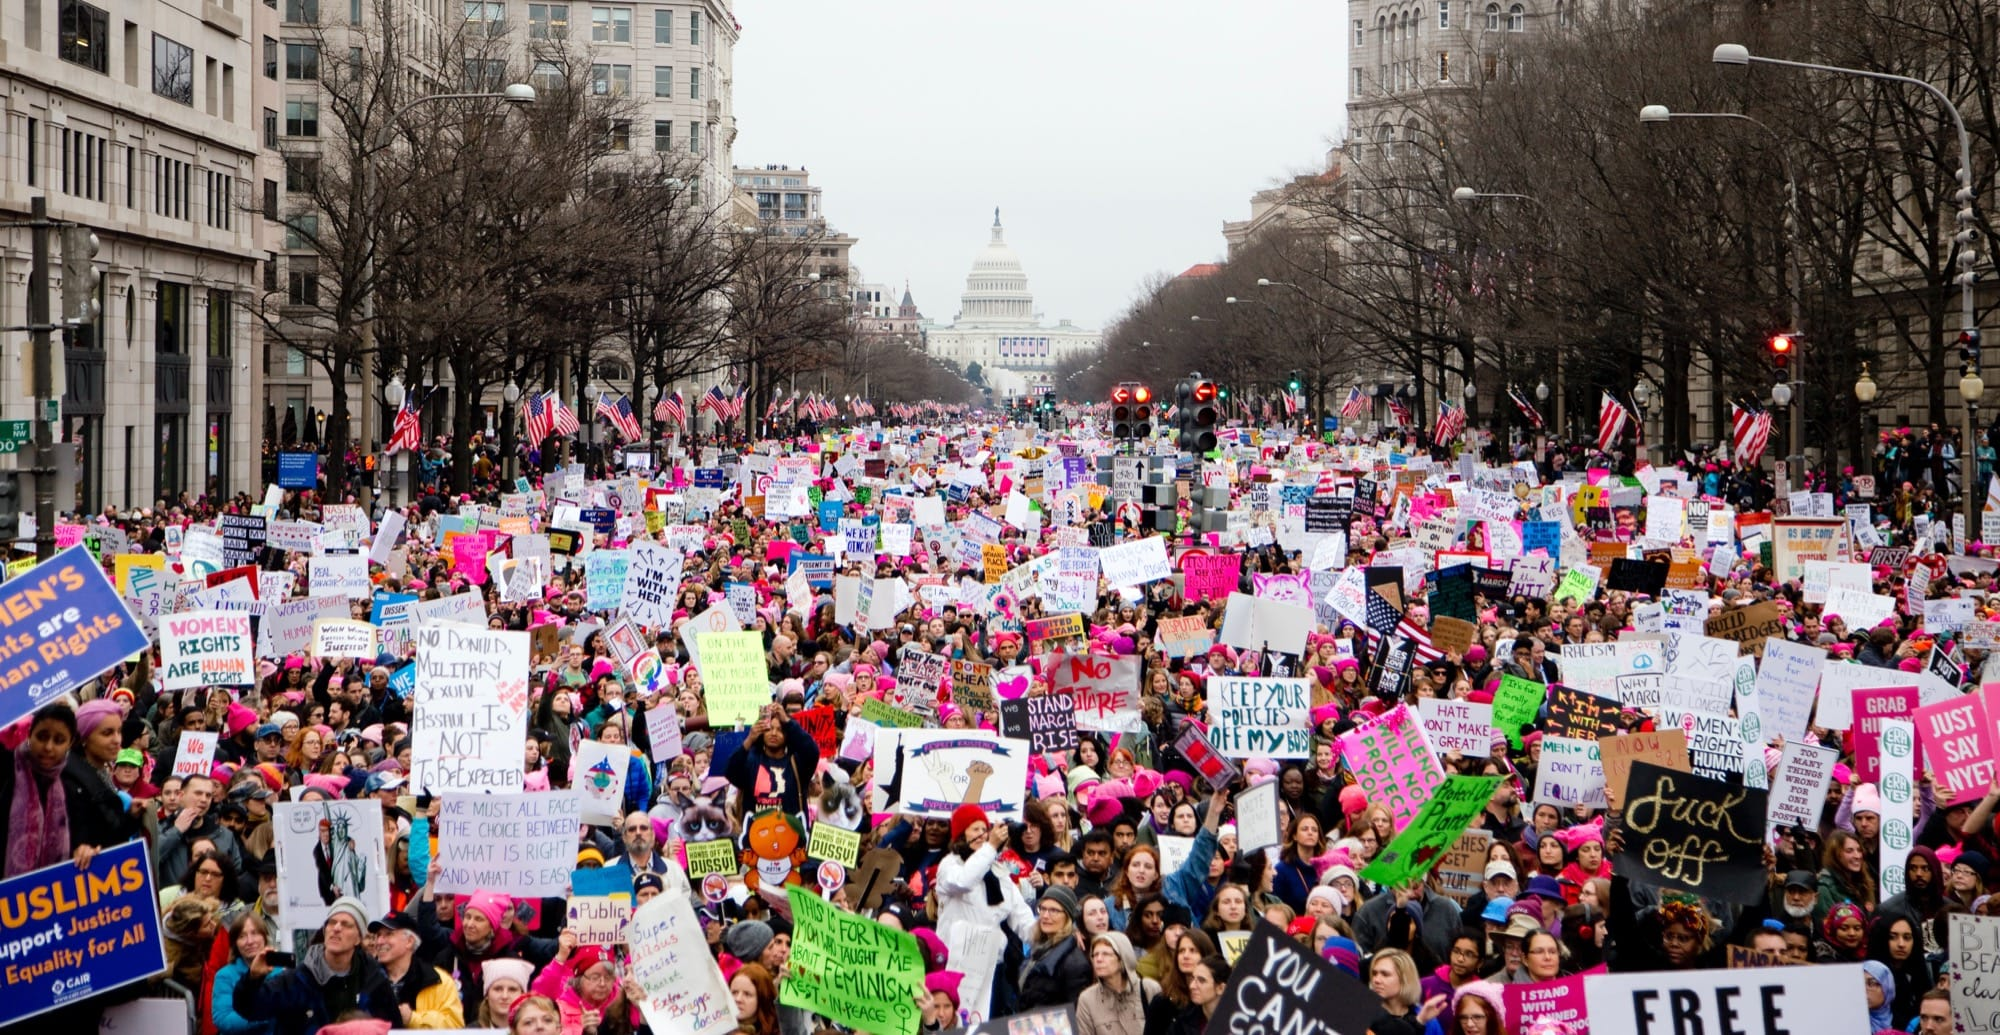 Hundreds of demonstrators holding signs at the women's march in Washington D.C.